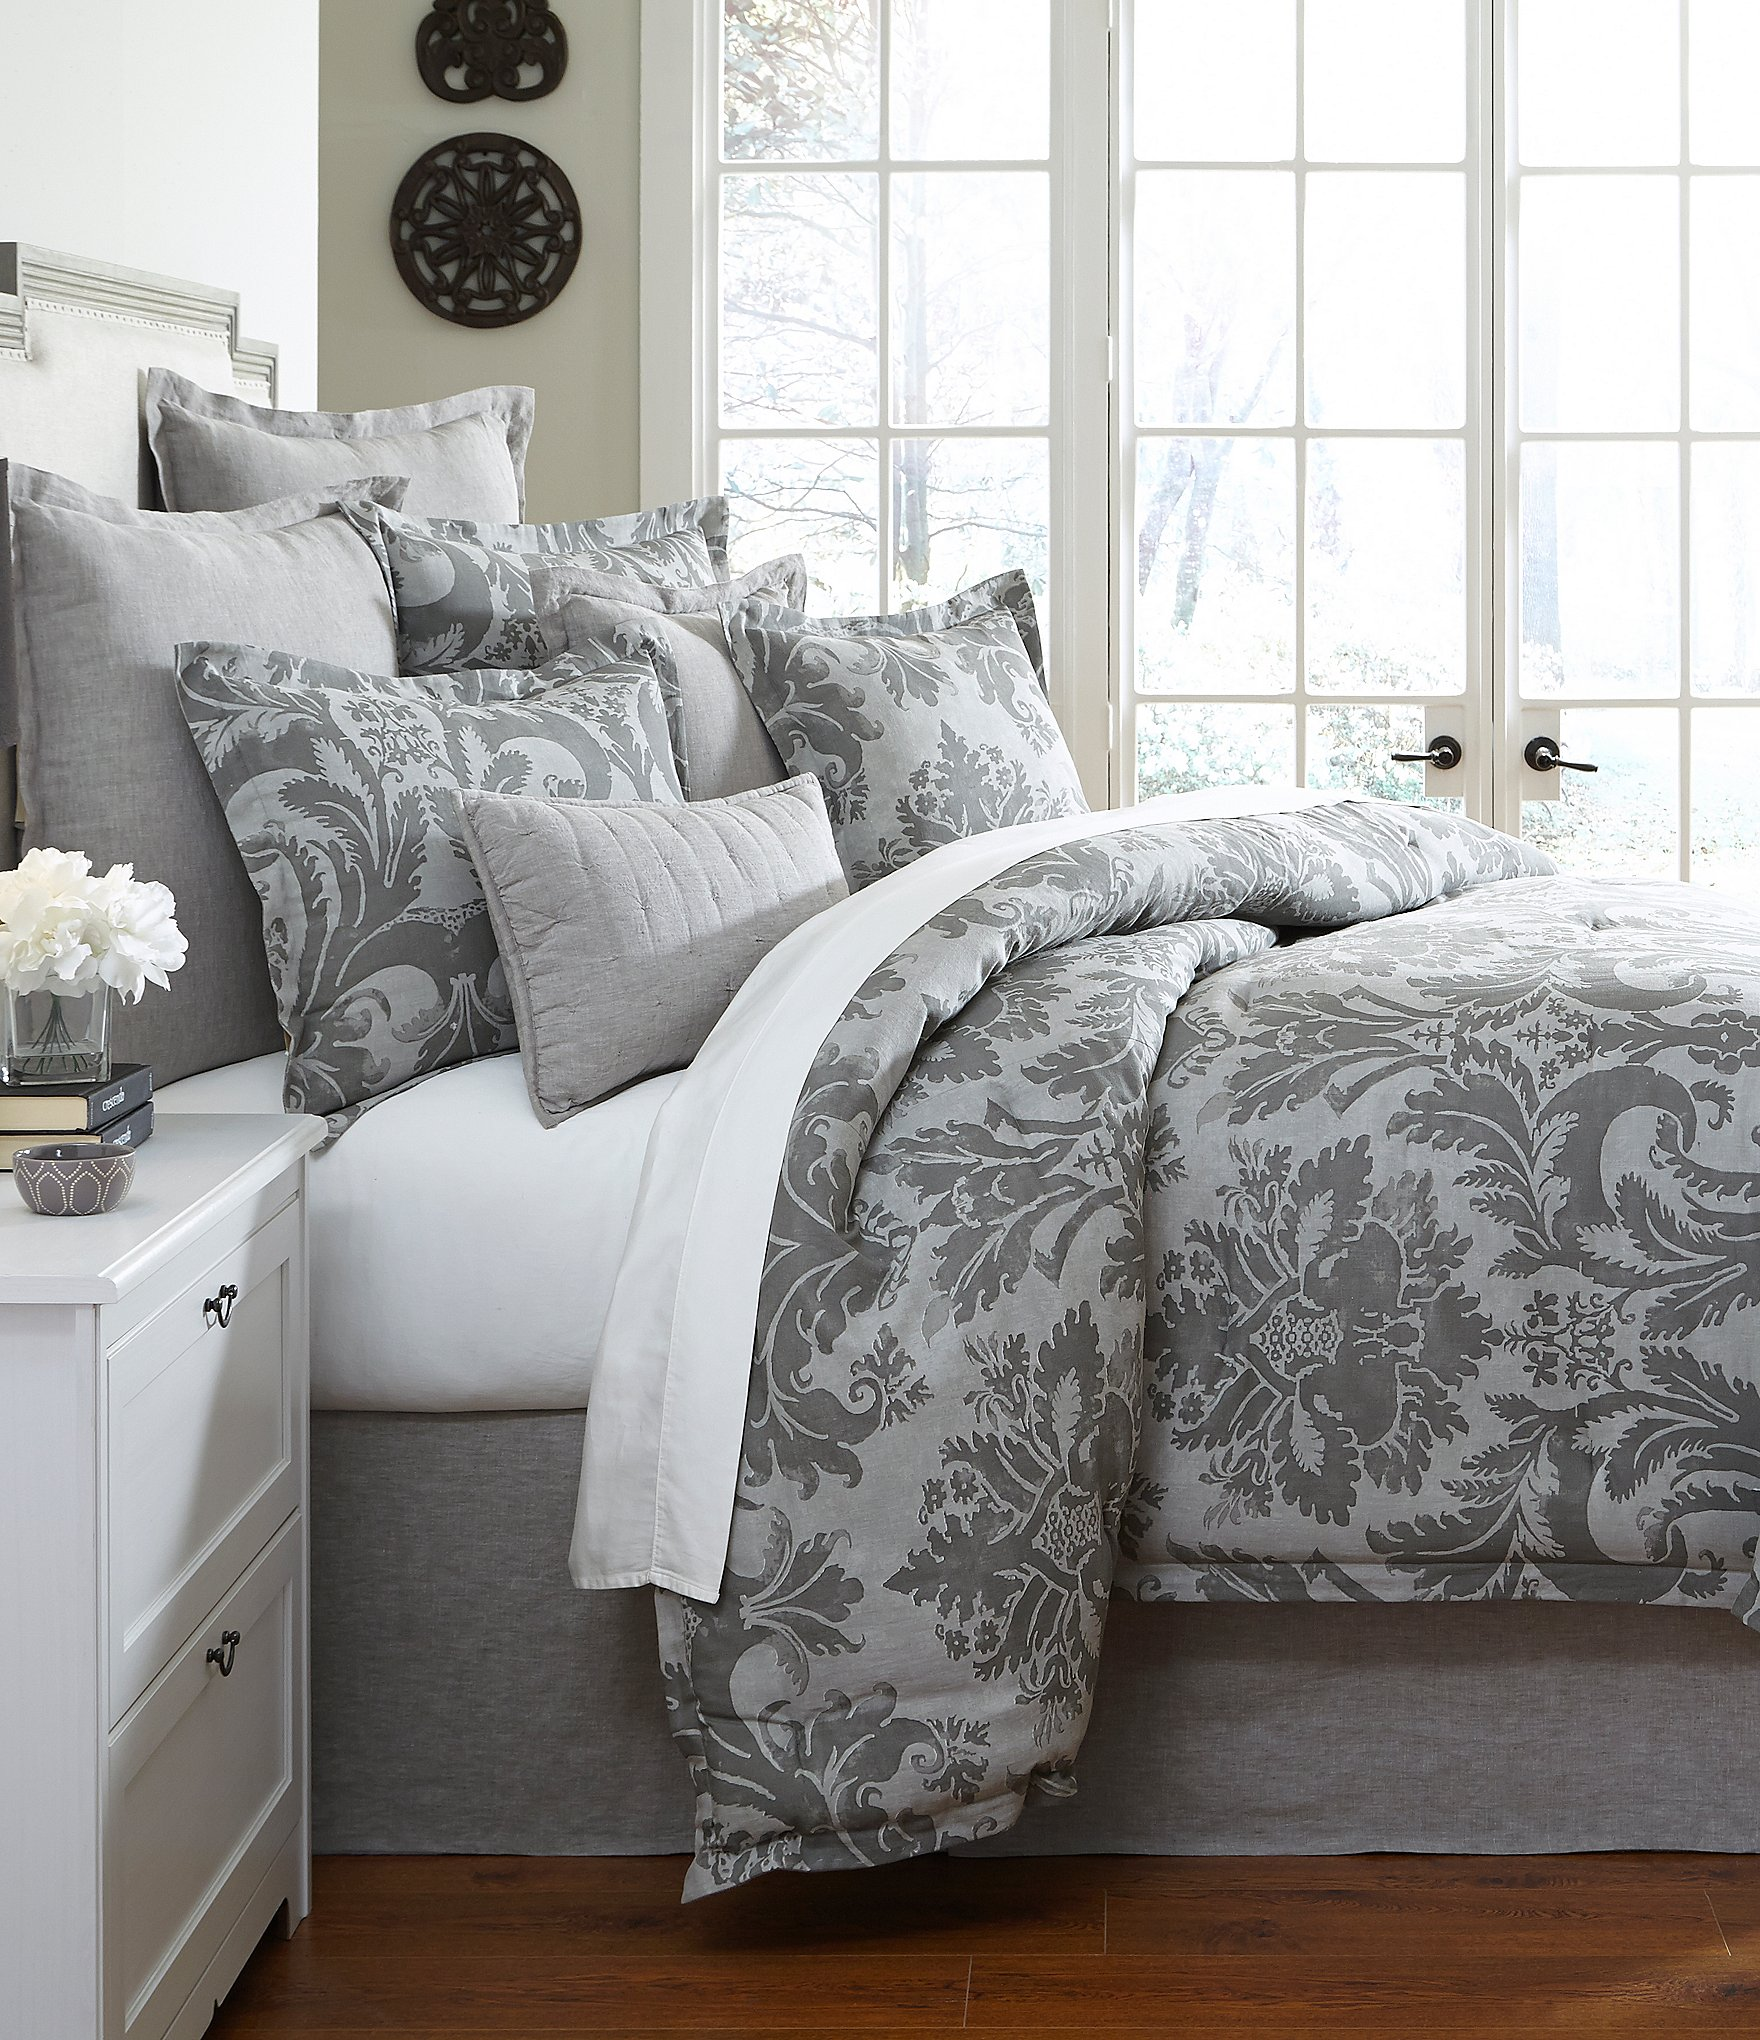 Southern Living Bedding : Southern Living Marquis Floral Medallion Cotton Twill ...